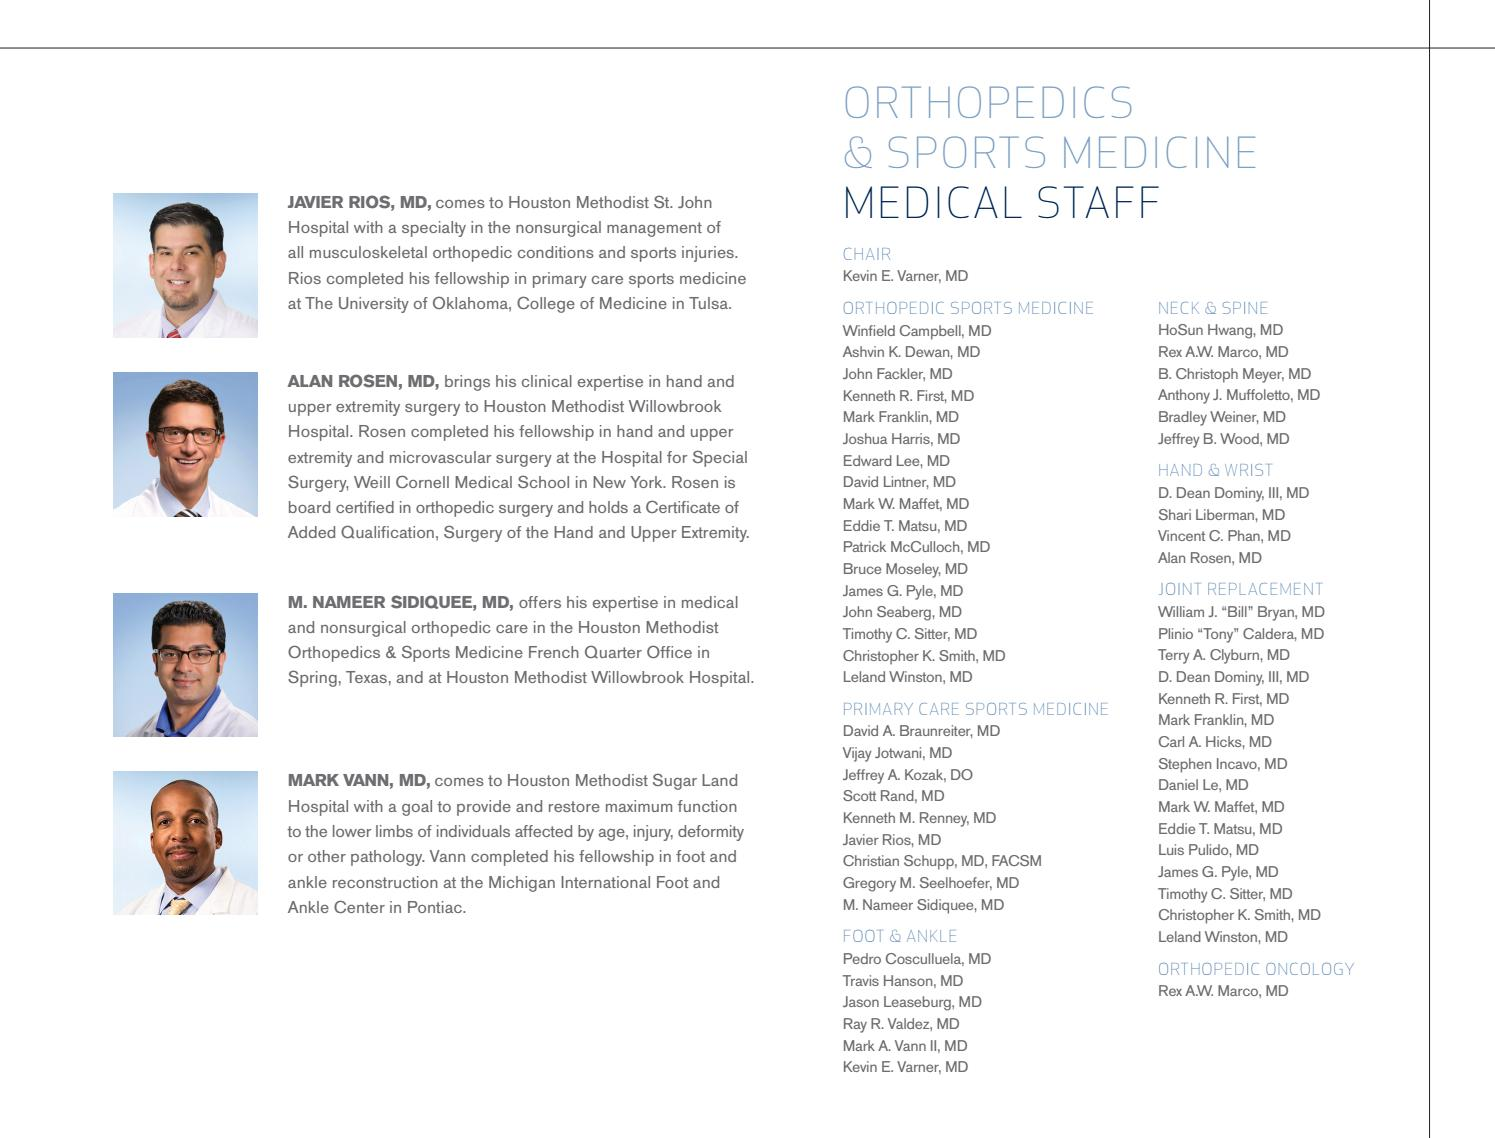 Houston Methodist - Ortho Annual Report 2014-15 by Houston